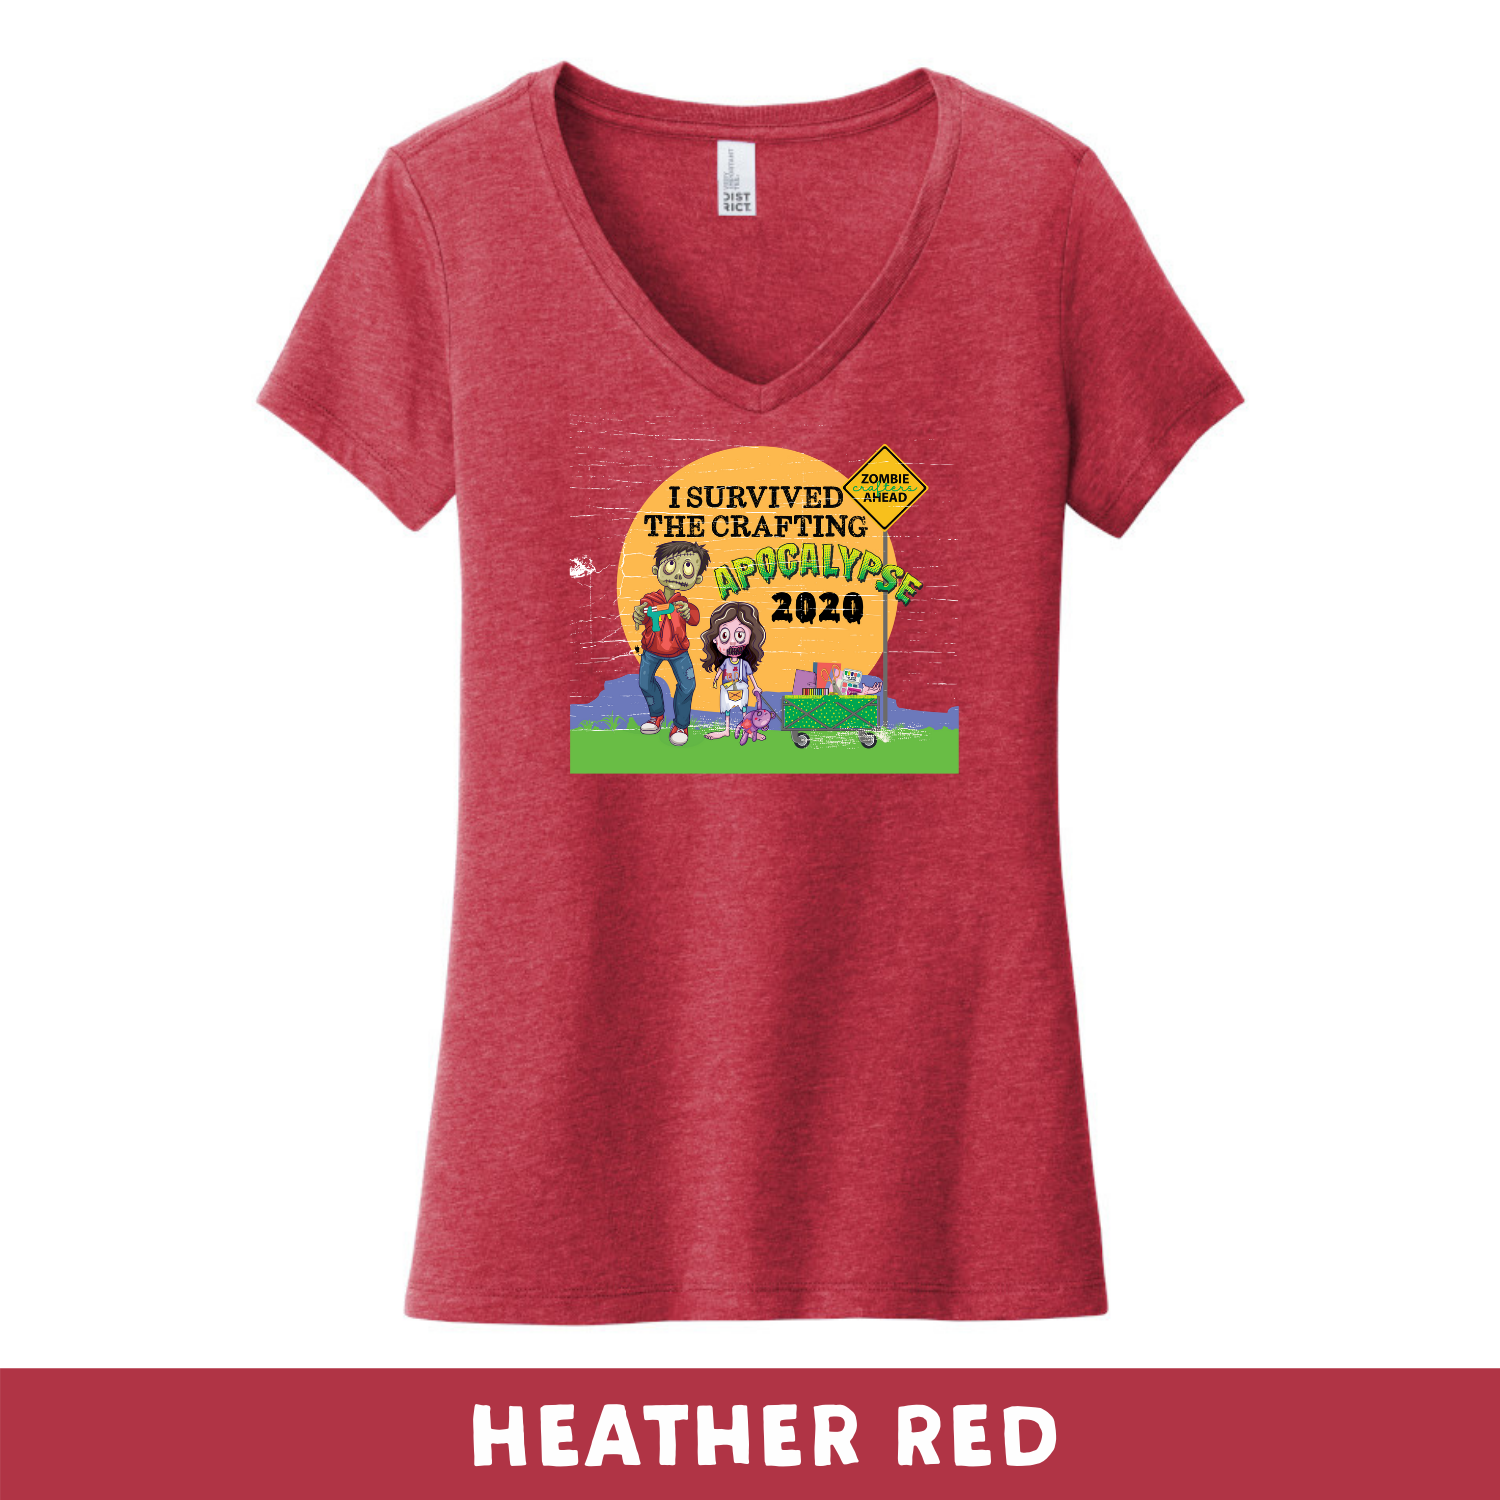 Heather Red - Woman's Cut V-Neck - Heathered & Frosts - I Survived The 2020 Crafting Apocalypse